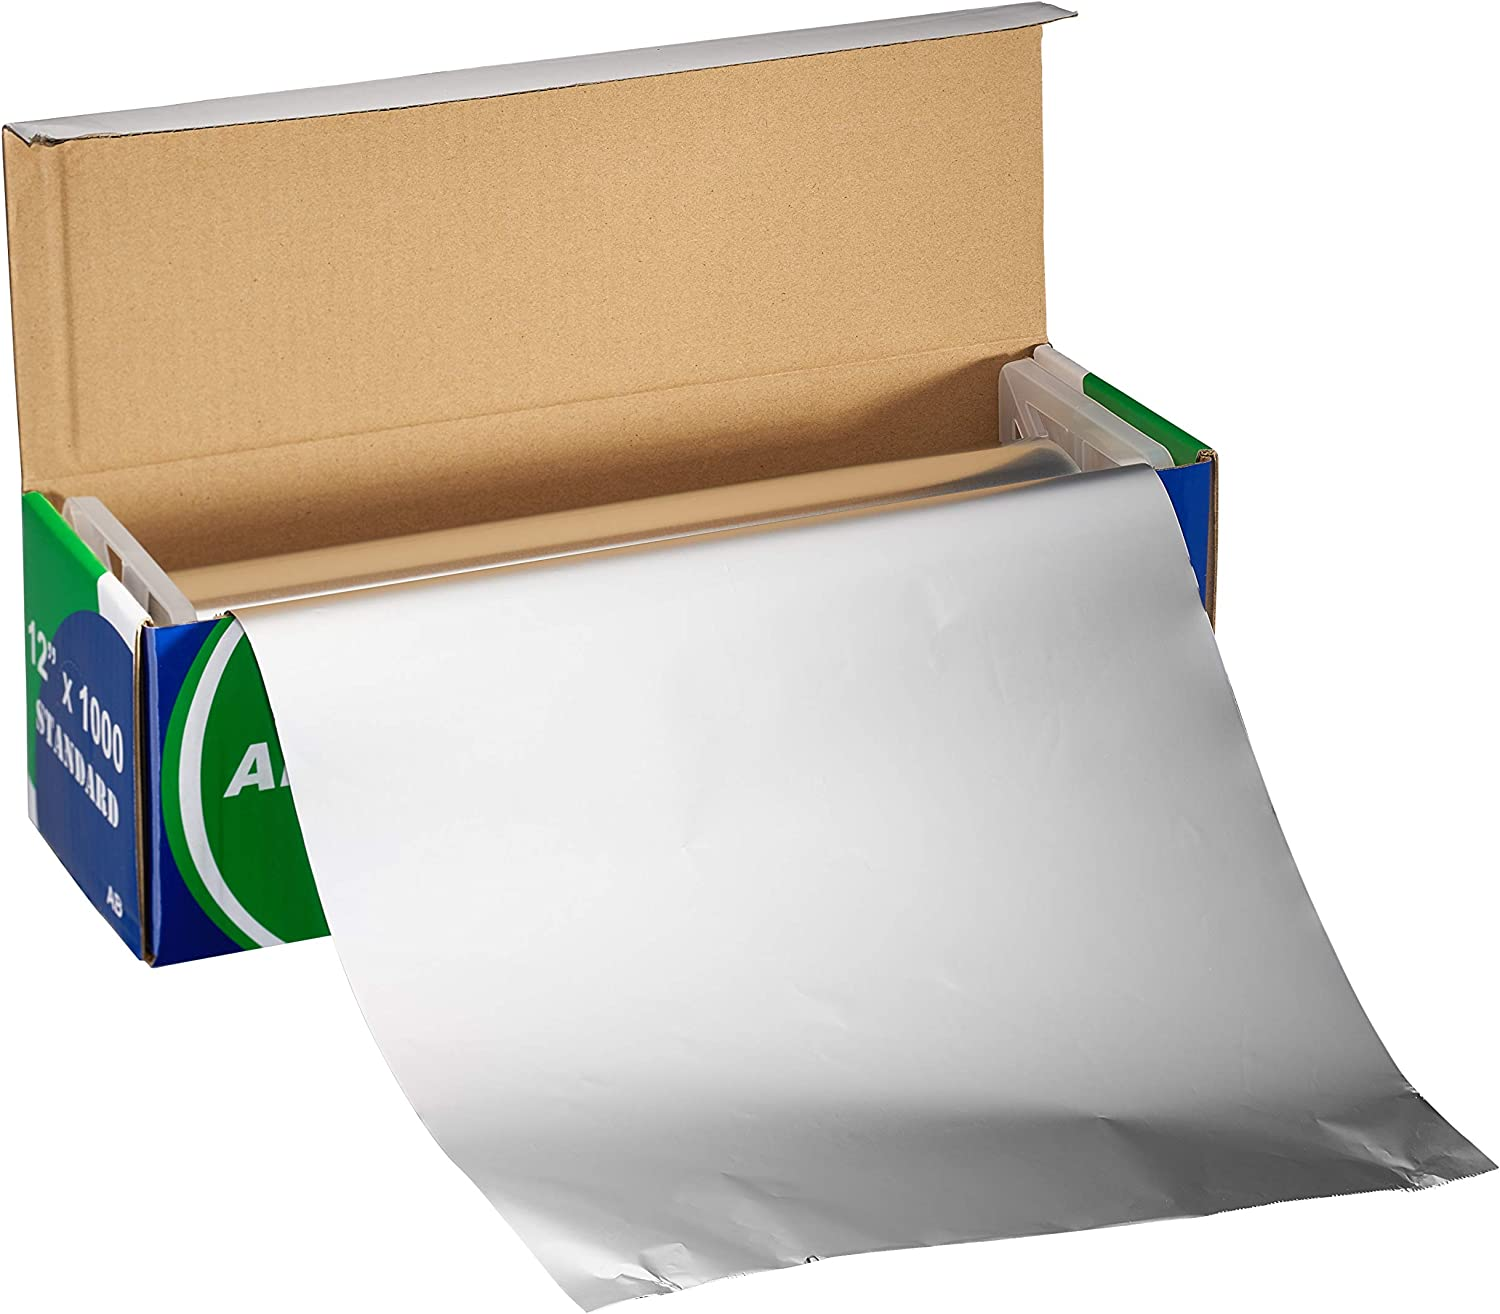 Food Service Aluminum Foil Roll 12 in Co New York Mall Outlet sale feature 1000 x Sturdy ft with